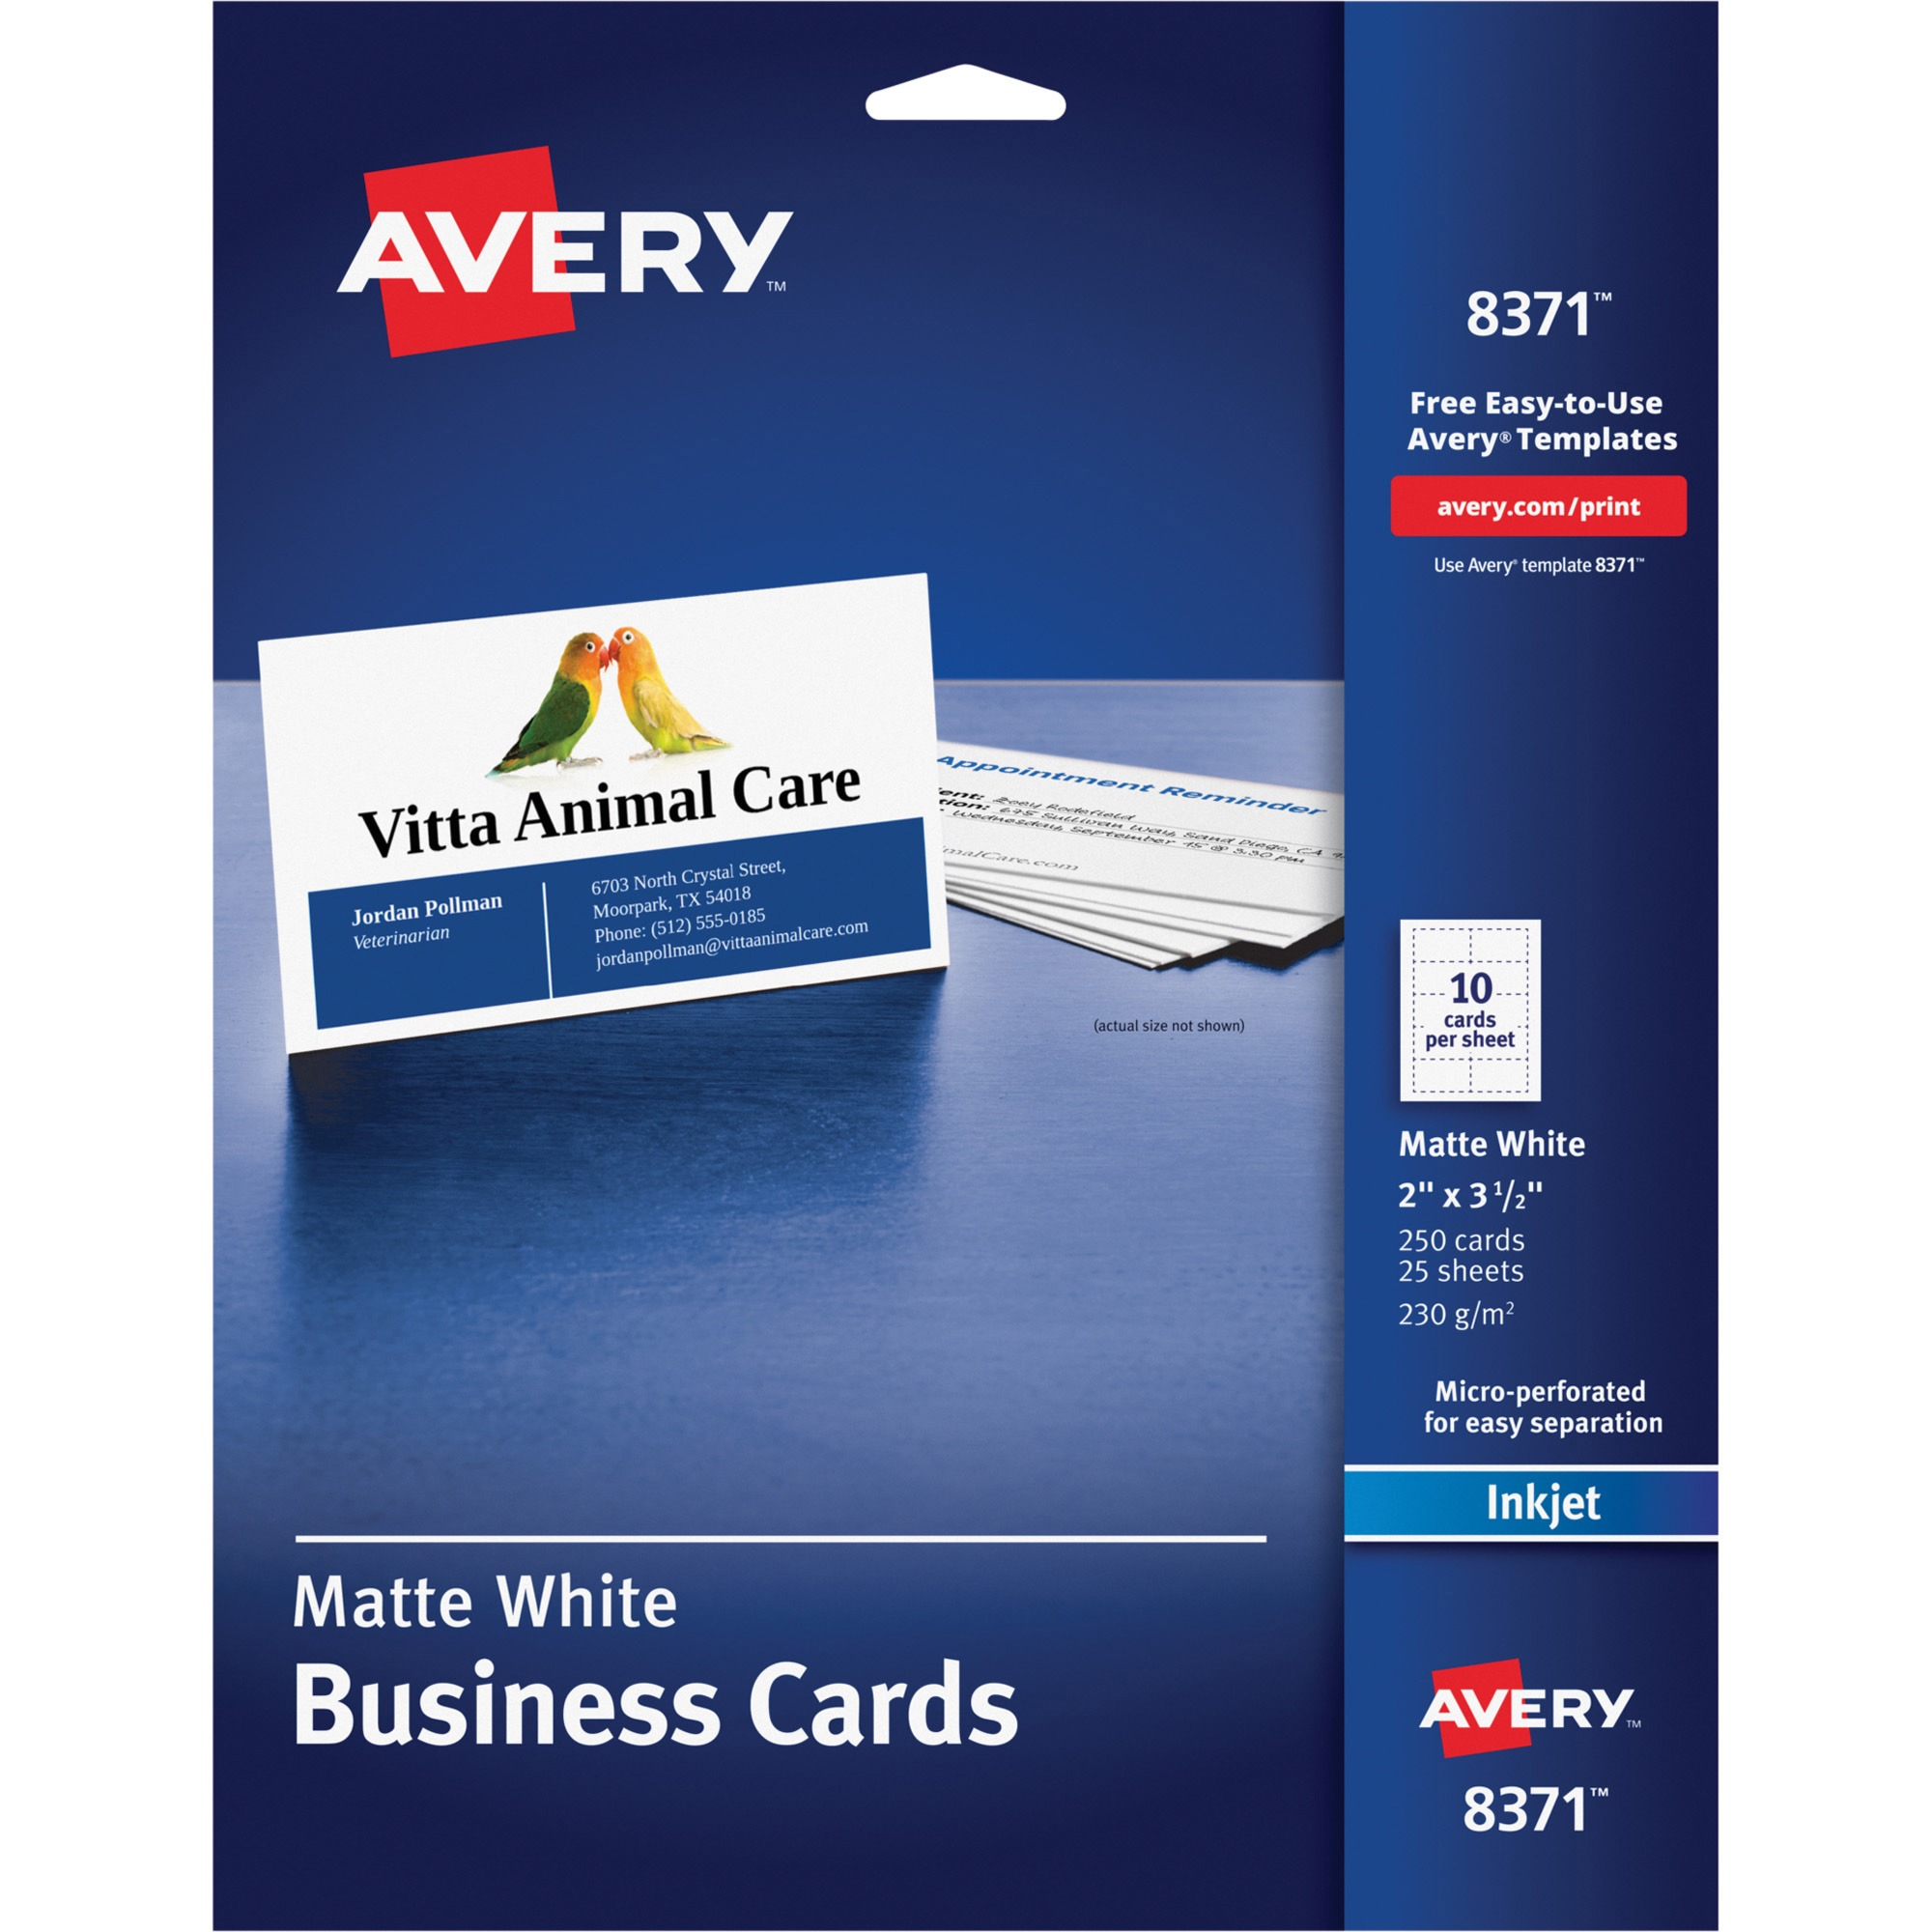 Inkjet Microperforated Business Cards